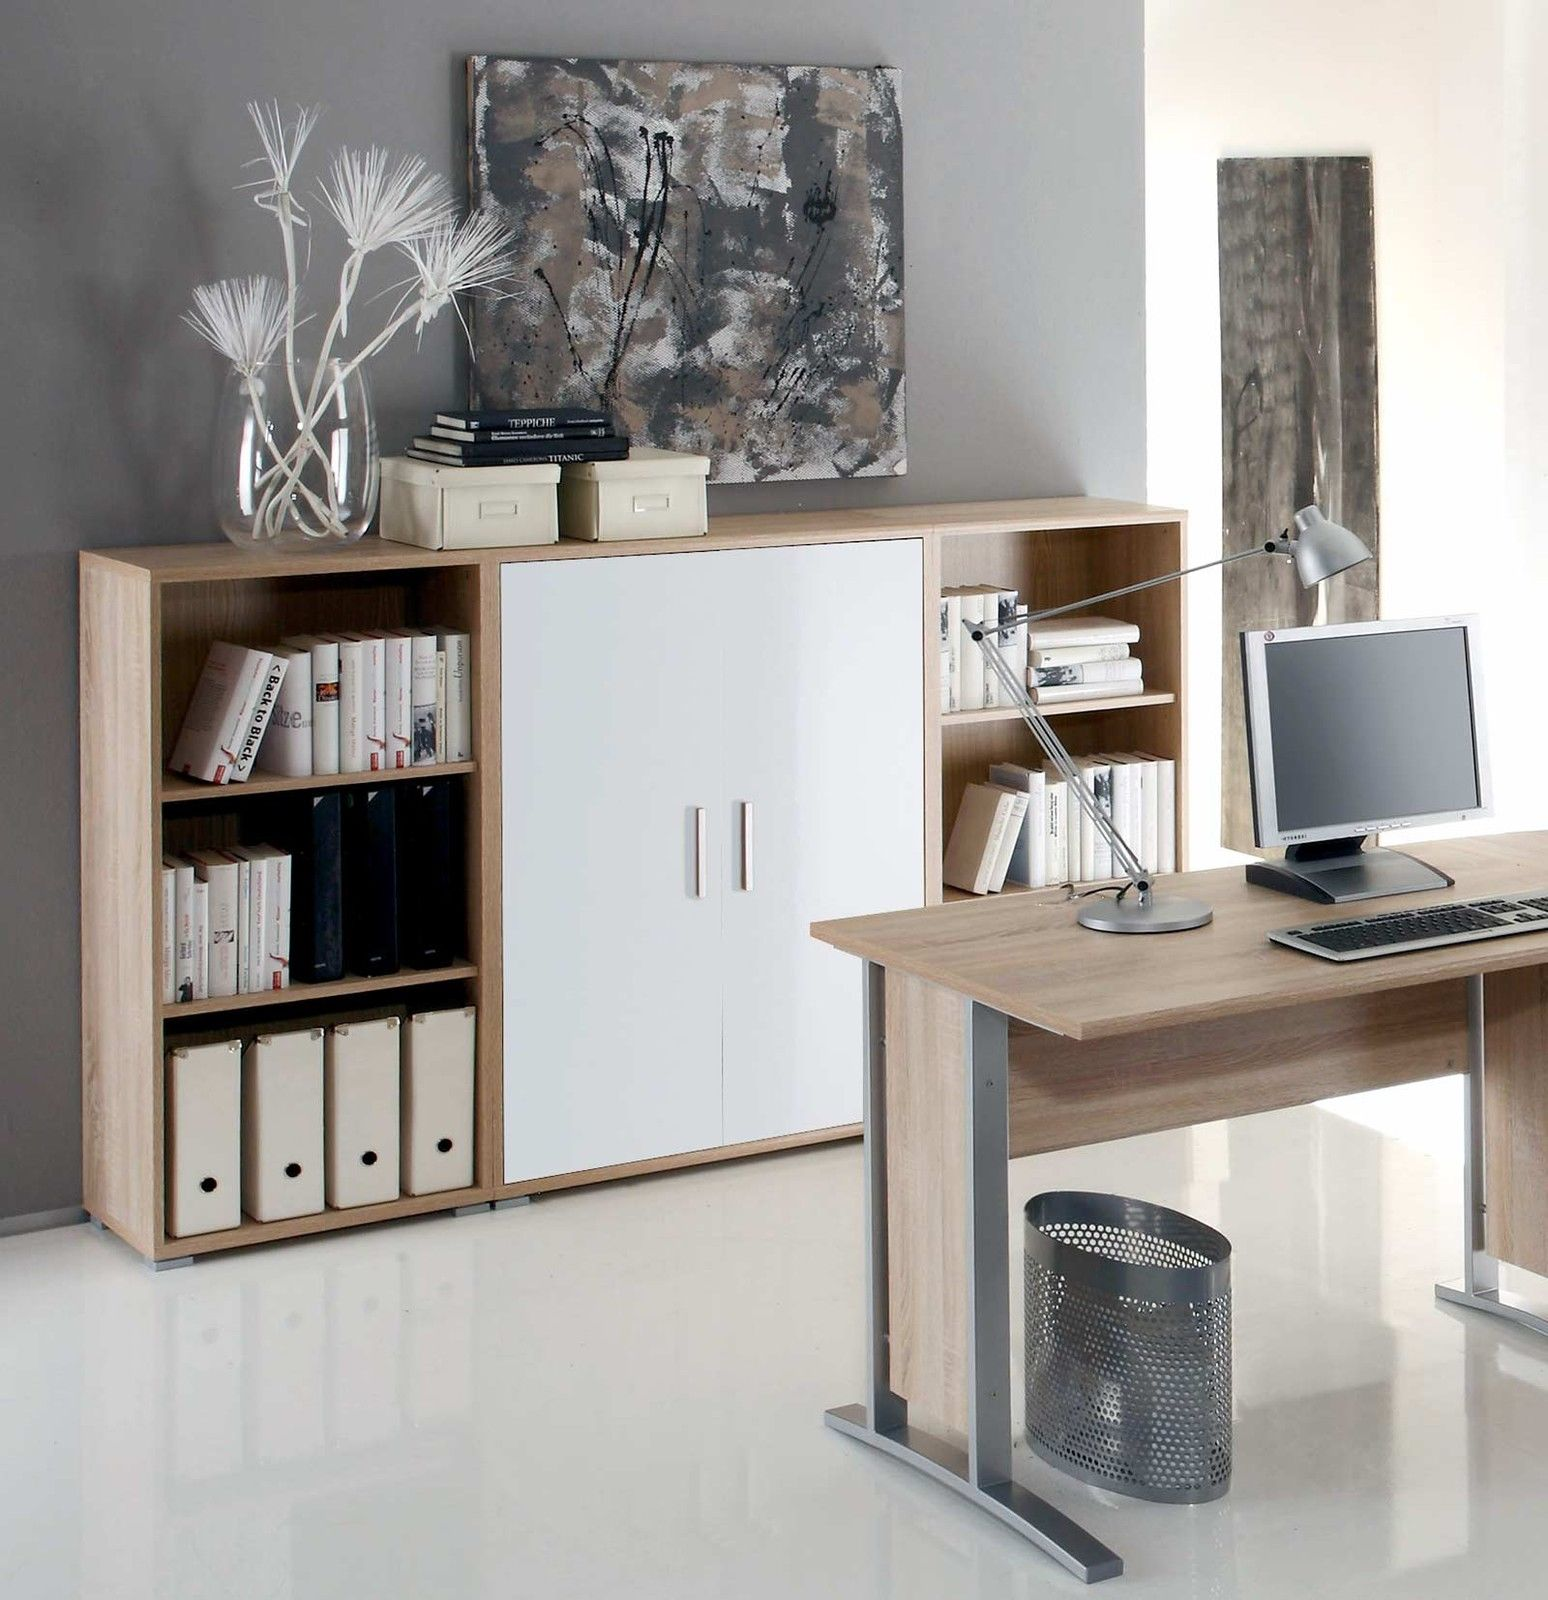 highboard office line in eiche sonoma wei glanzmoebel dich. Black Bedroom Furniture Sets. Home Design Ideas